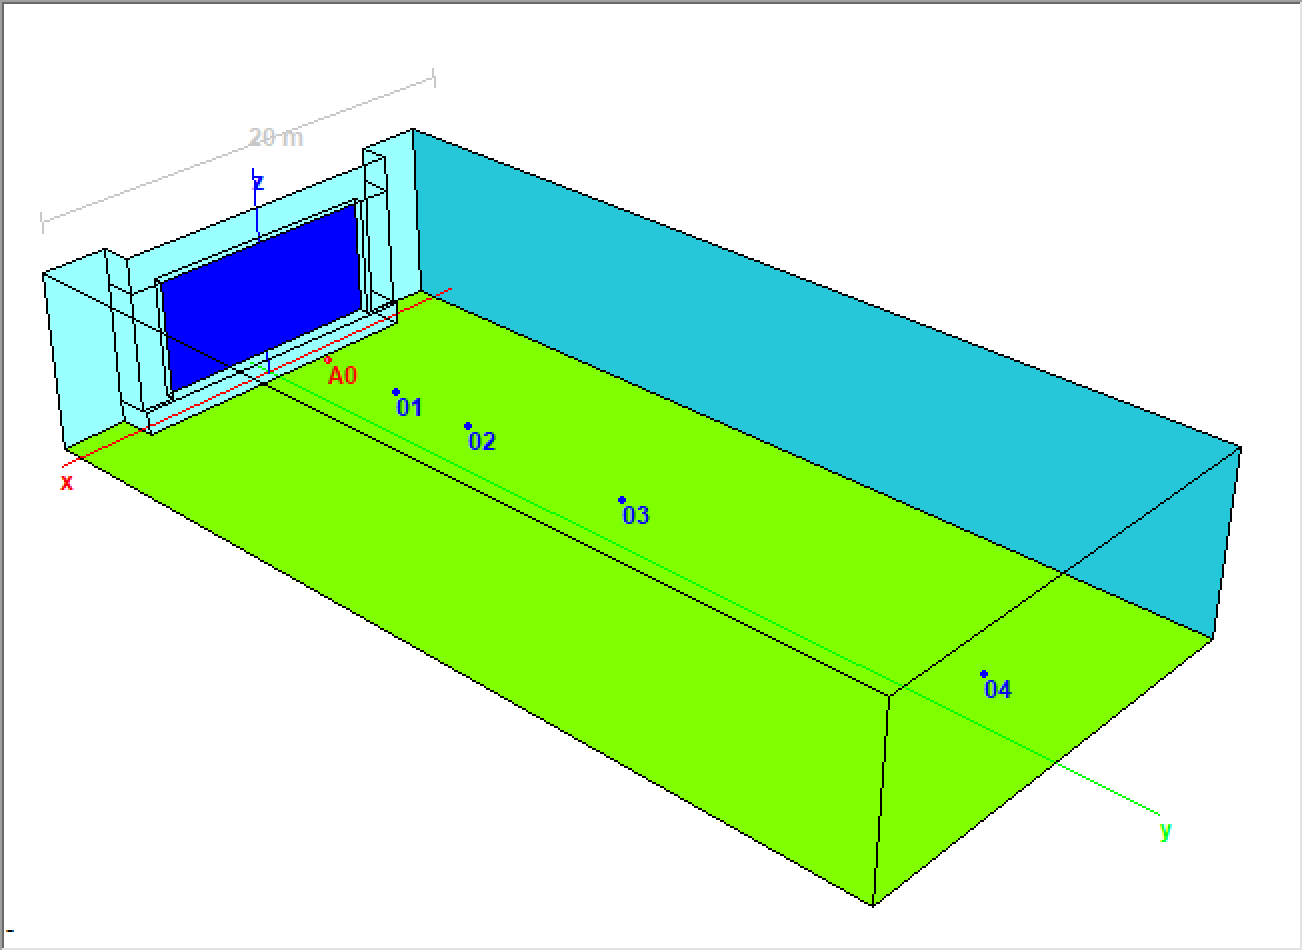 Figure 6 - A simple model based on the room dimensions and source/receiver positions in the MFA (CATT-A). A0 is the omni sound source and 01, 02, 03, and 04 are receiver (listener) positions.